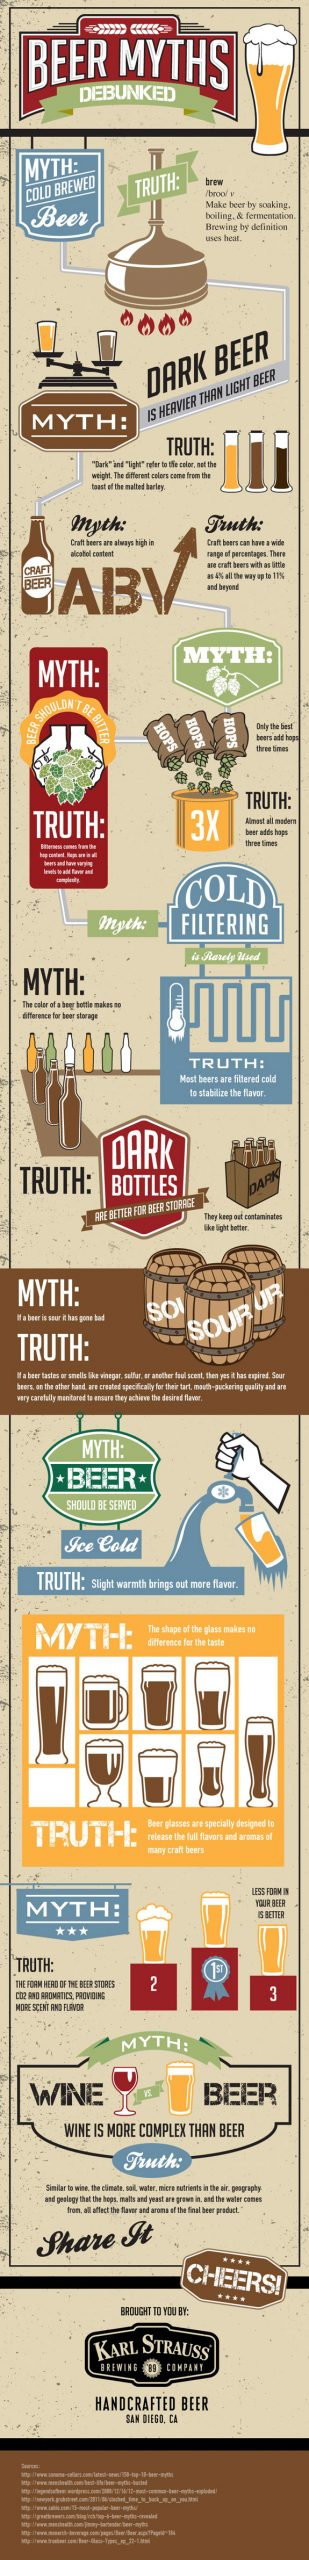 beer myth Infographic